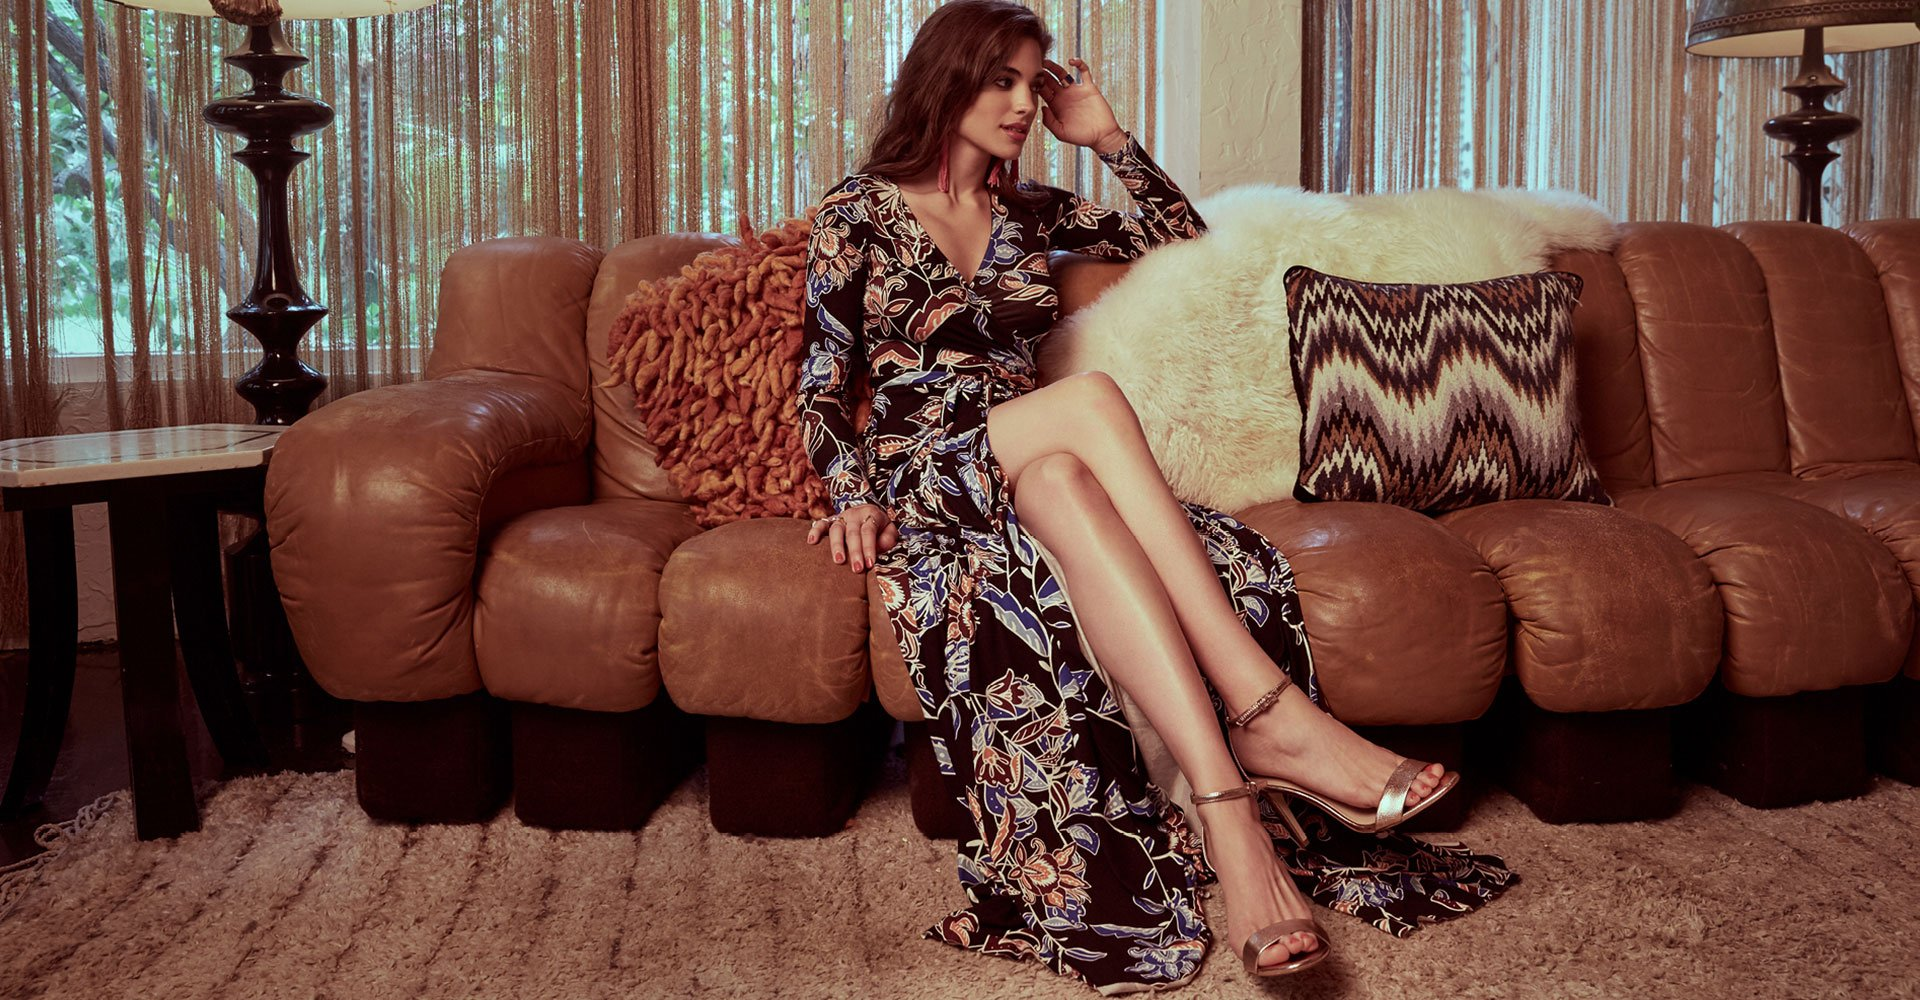 Image of a woman reclining on couch in a printed maxi dress